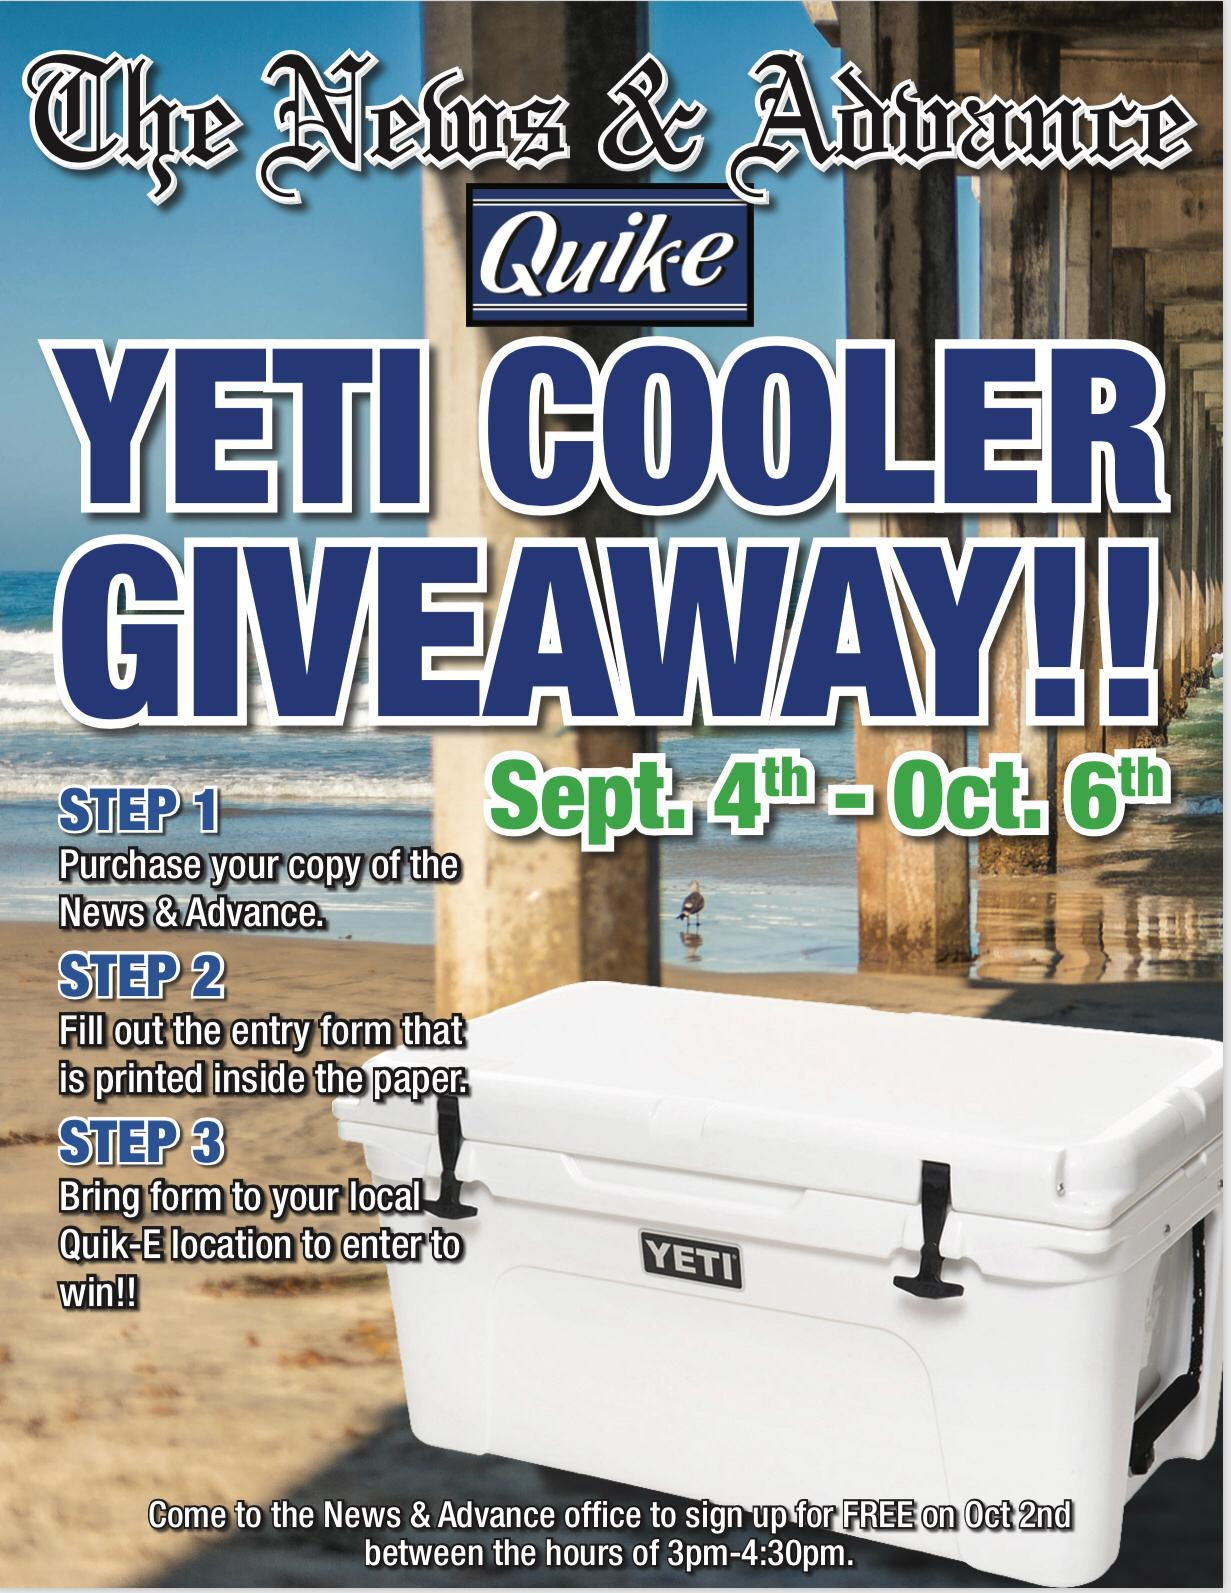 Idea #40 of 50 Days of Ideas! YETI COOLER GIVEAWAY!